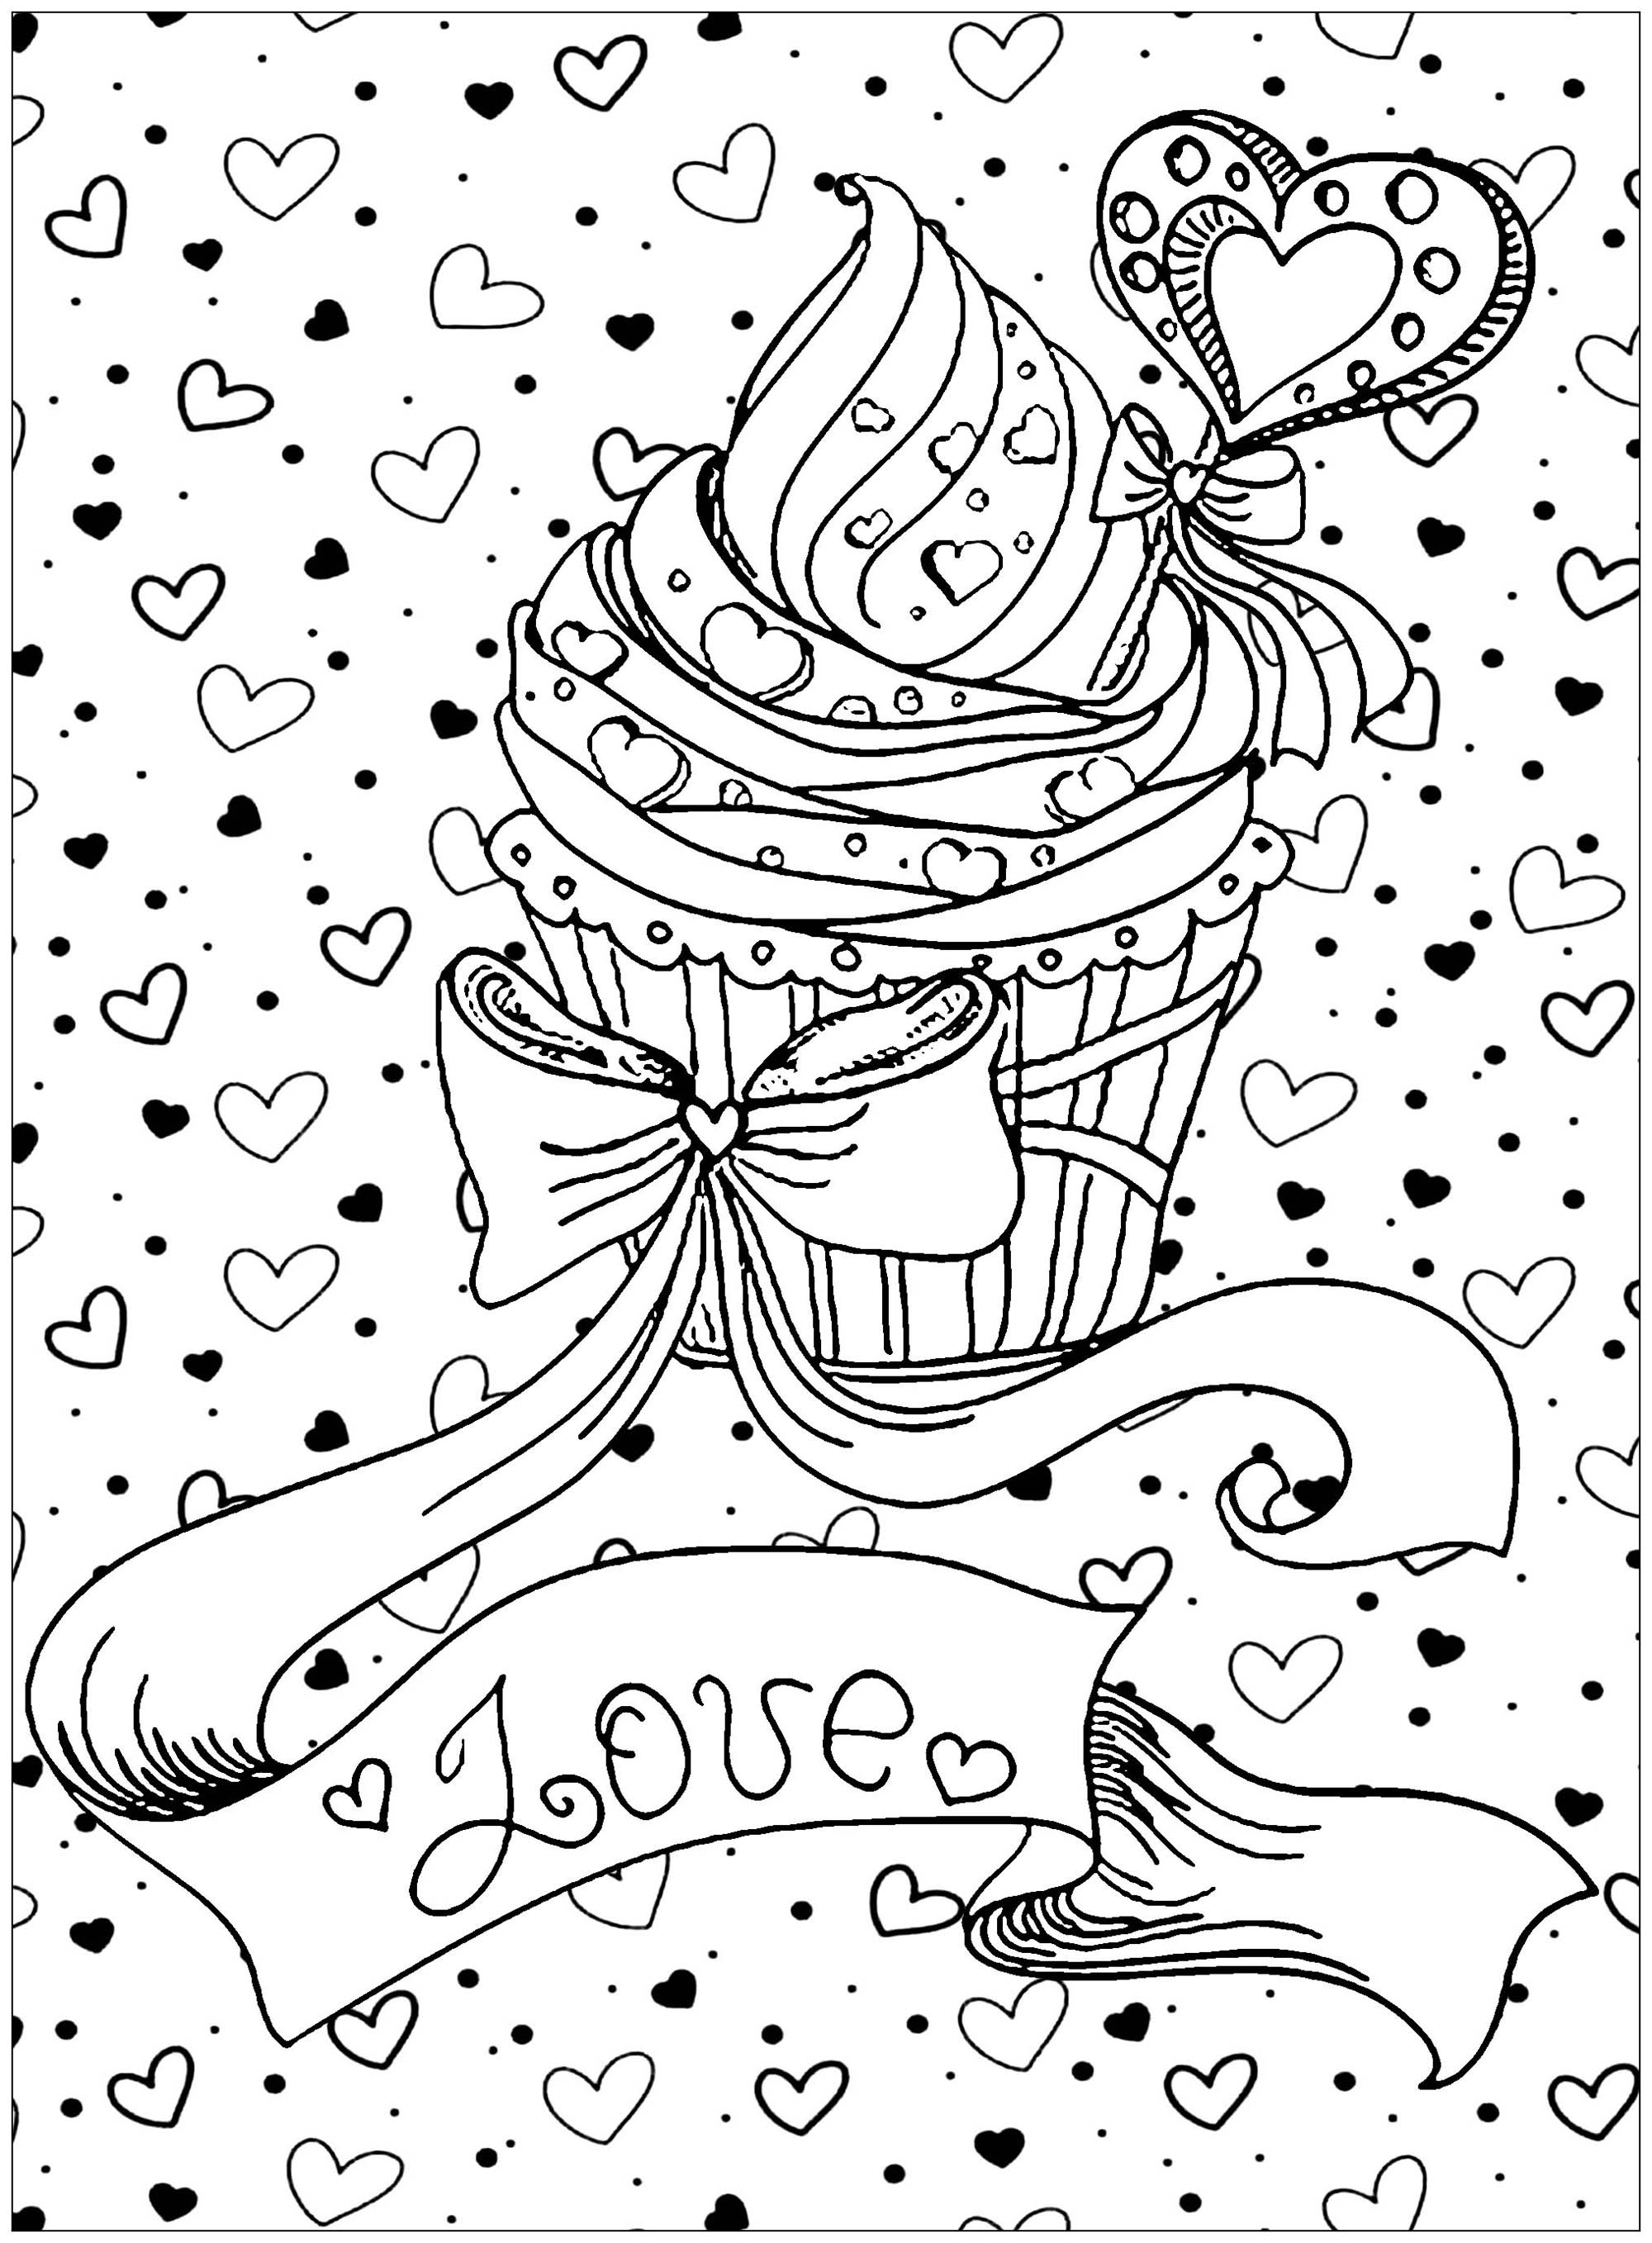 Cupcake love - Cupcakes Adult Coloring Pages